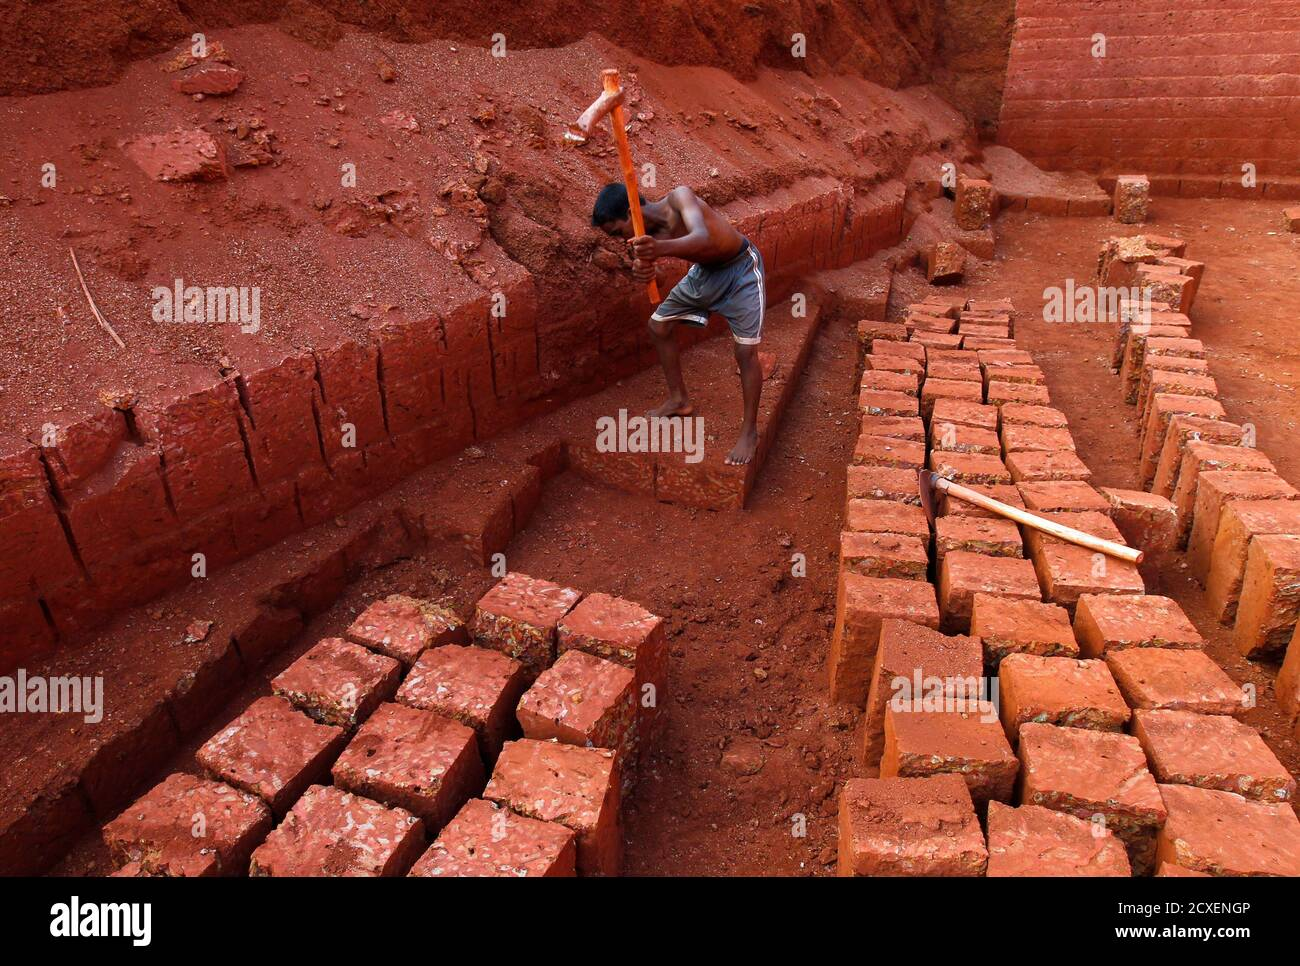 Sunil 14 Works At A Laterite Brick Mine In The Ratnagiri District About 360 Km 224